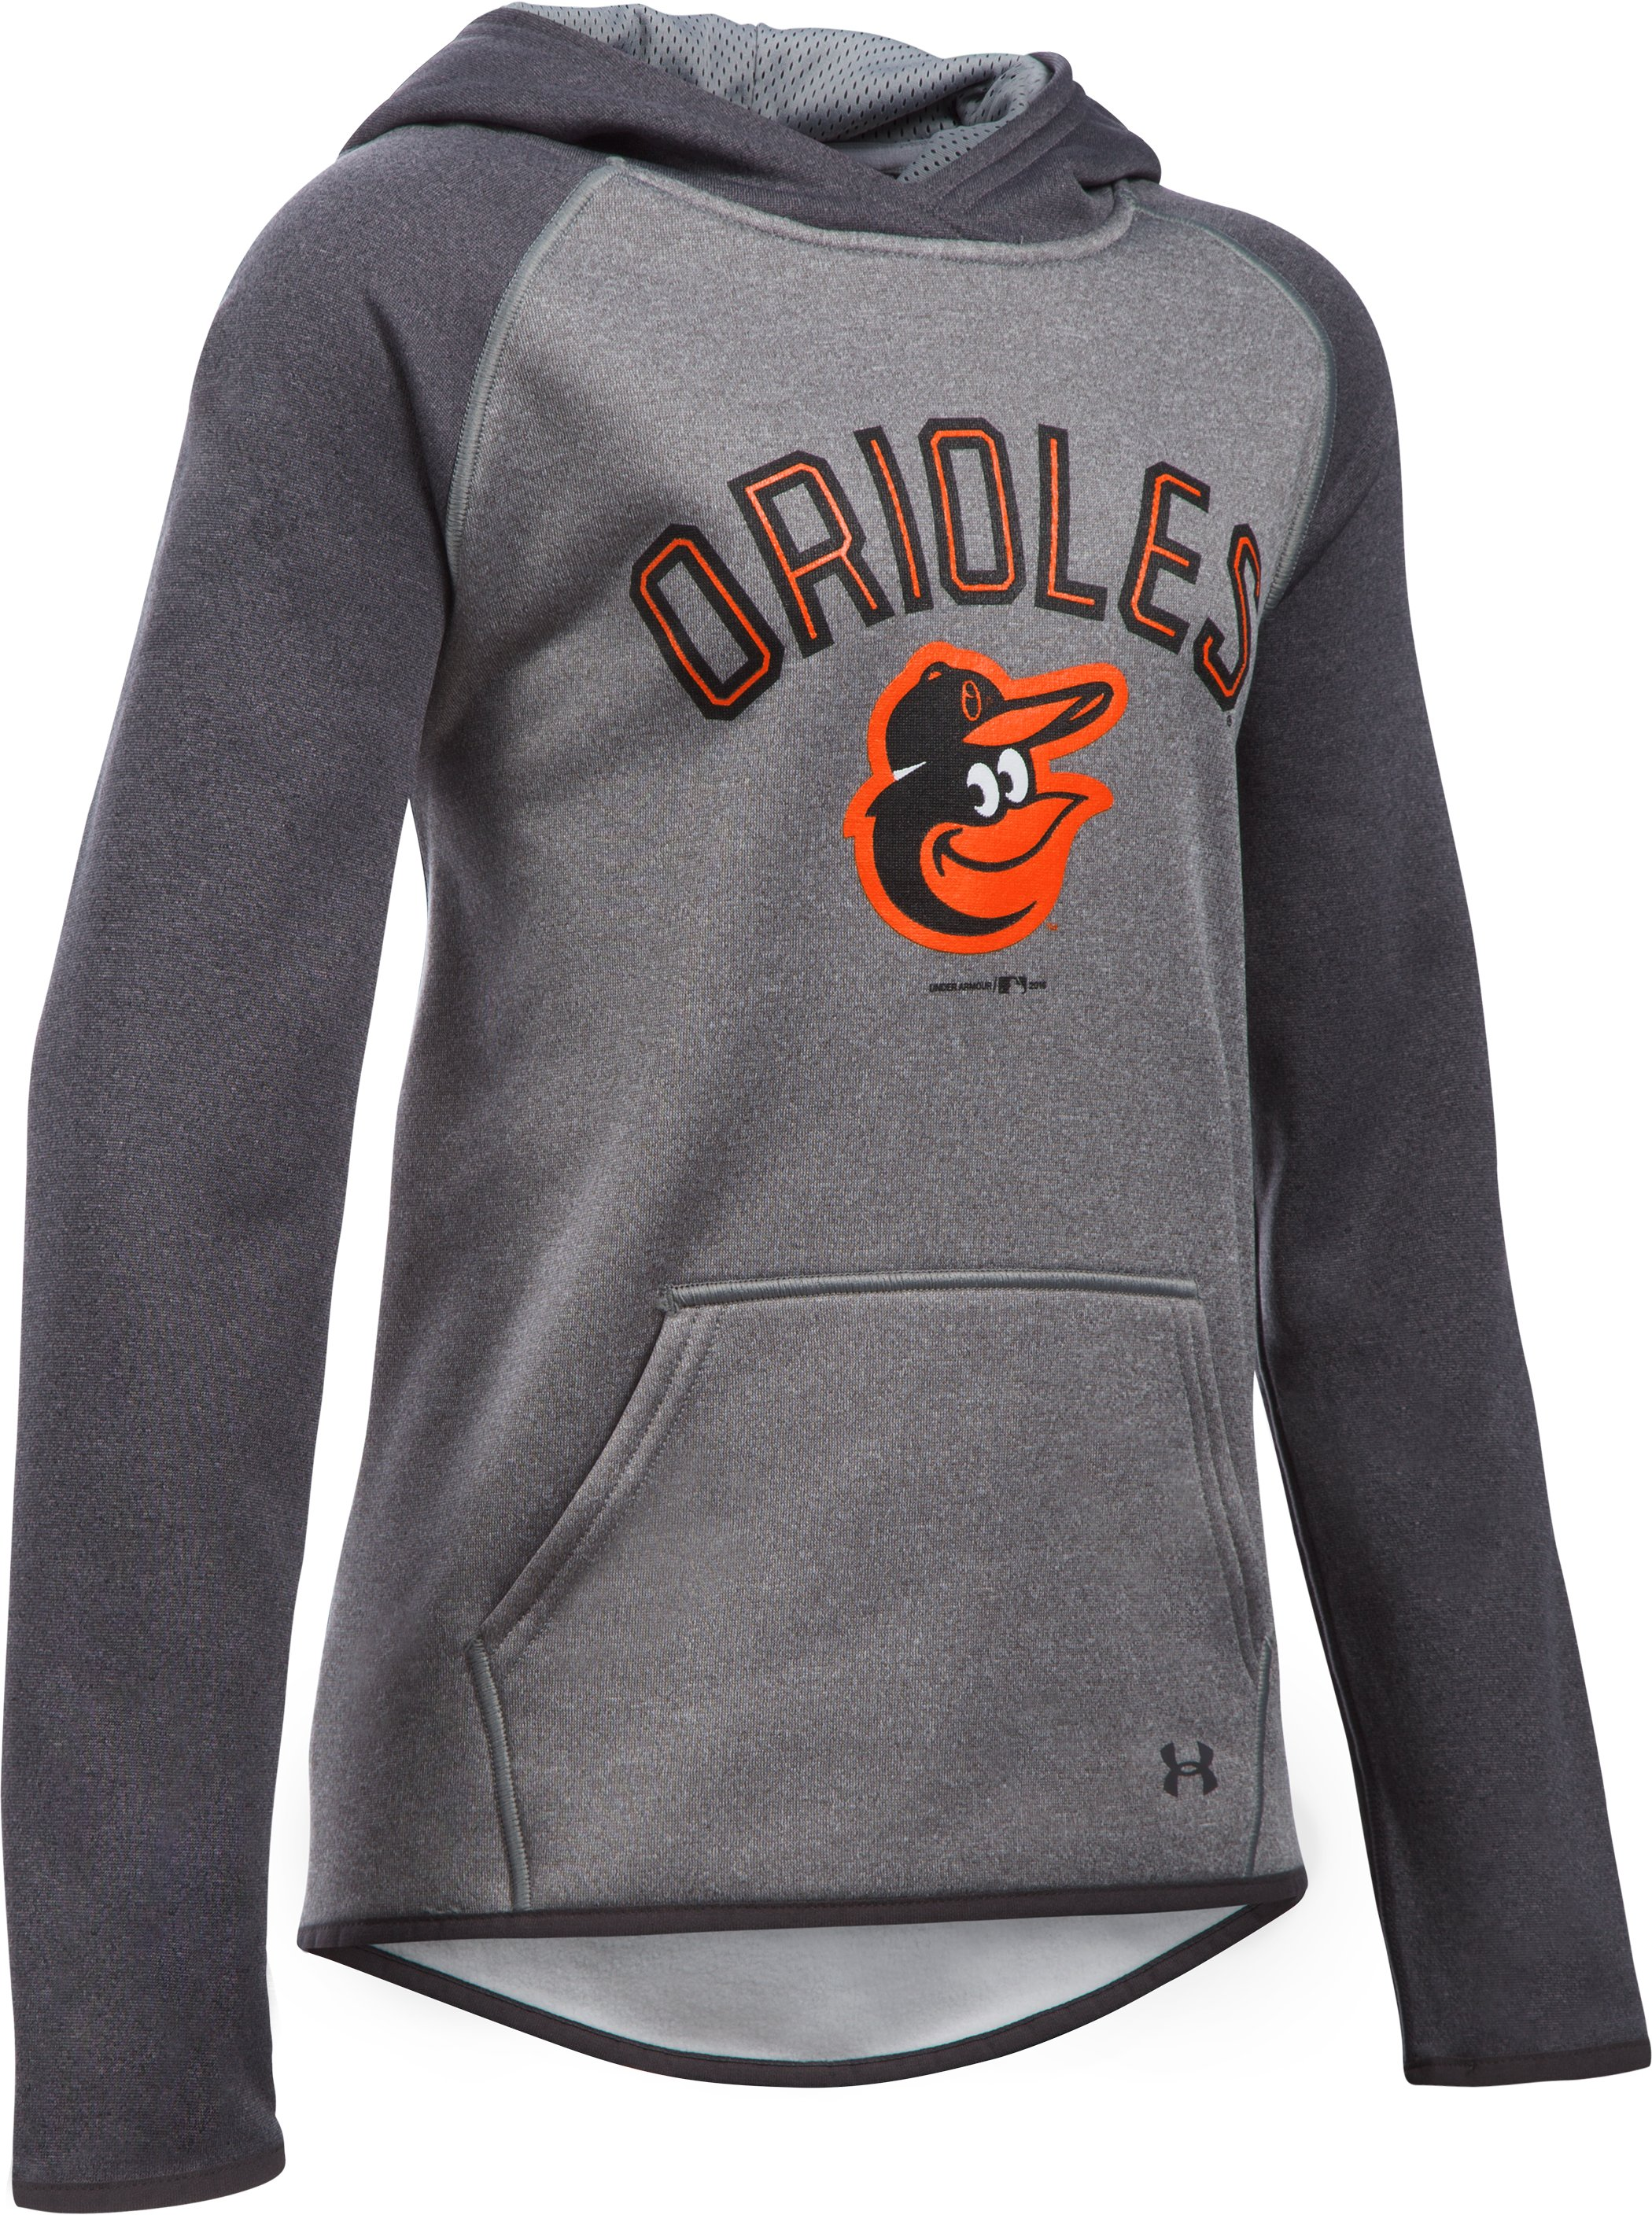 Girls' Baltimore Orioles Armour Fleece® Hoodie, Carbon Heather